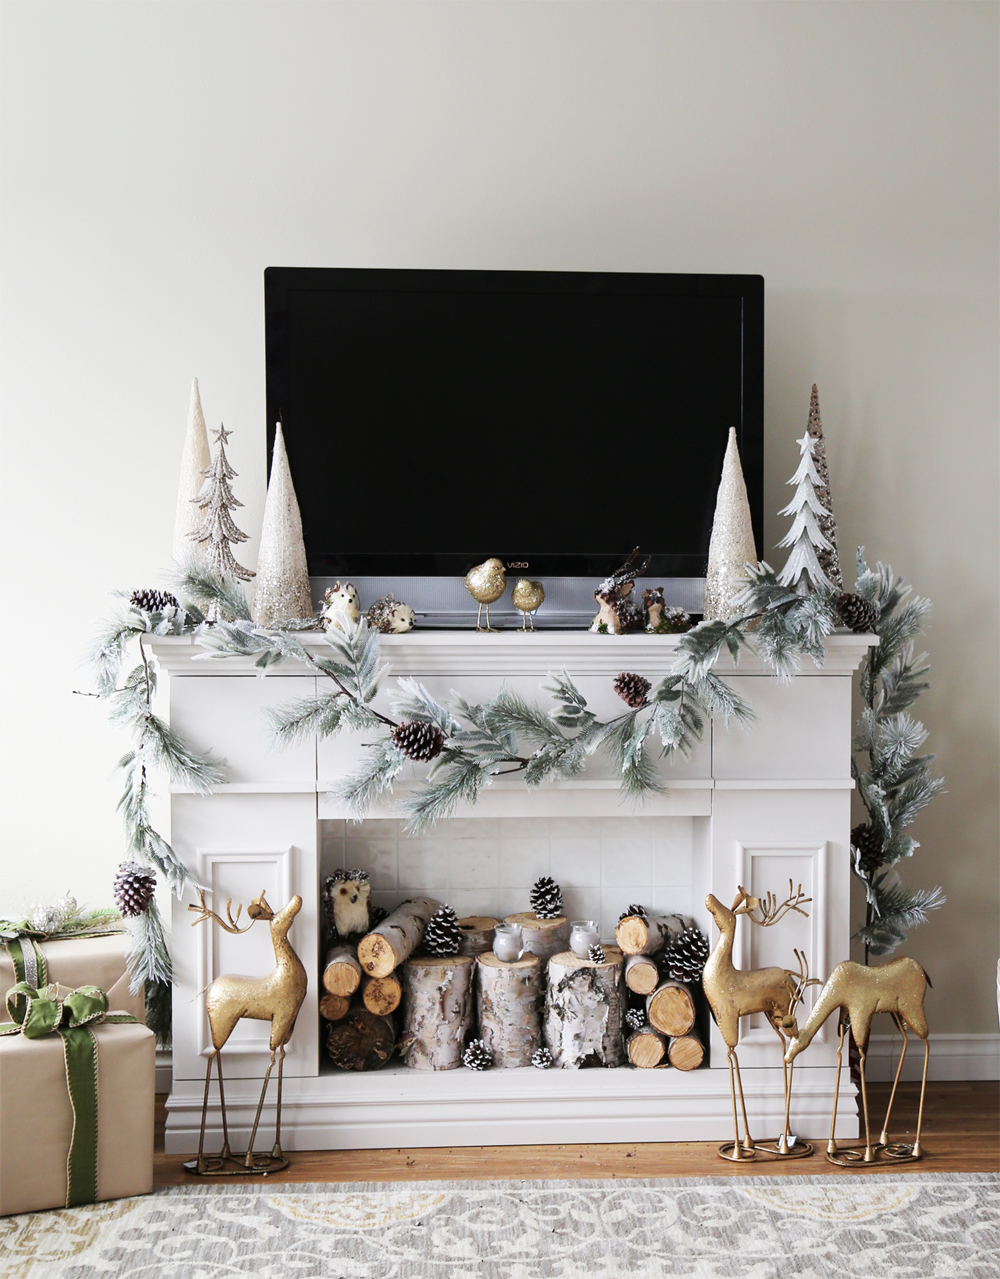 The full-fledged winters that surround the Xmas season call for a Christmas mantel decor that makes things look cozy